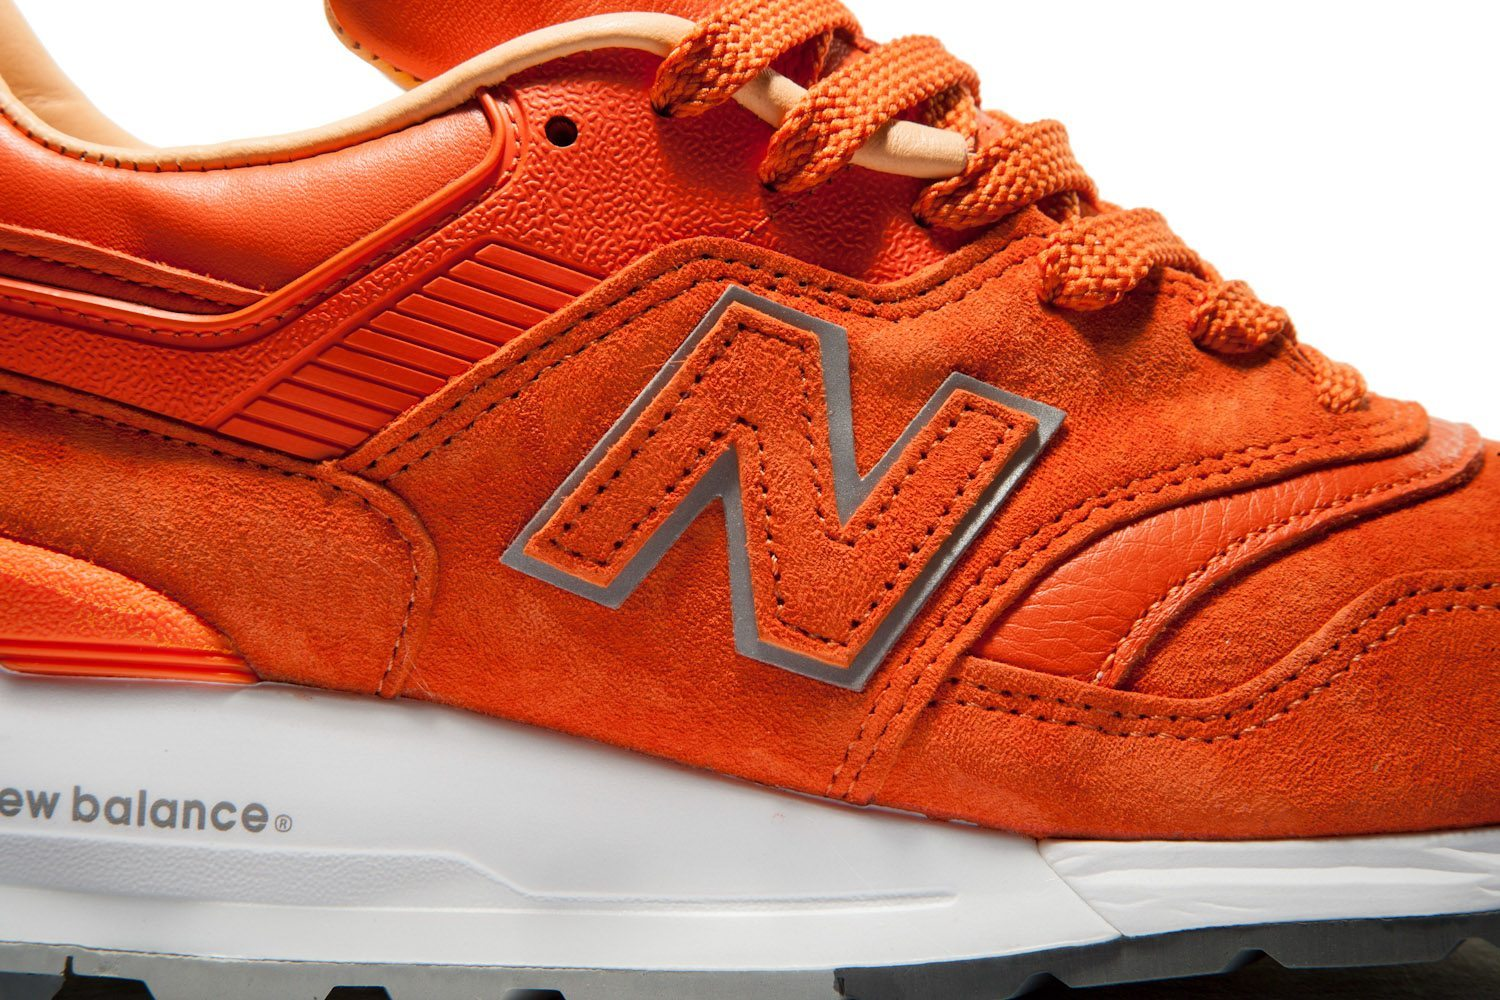 Concepts x New Balance 997 Luxury Goods 3